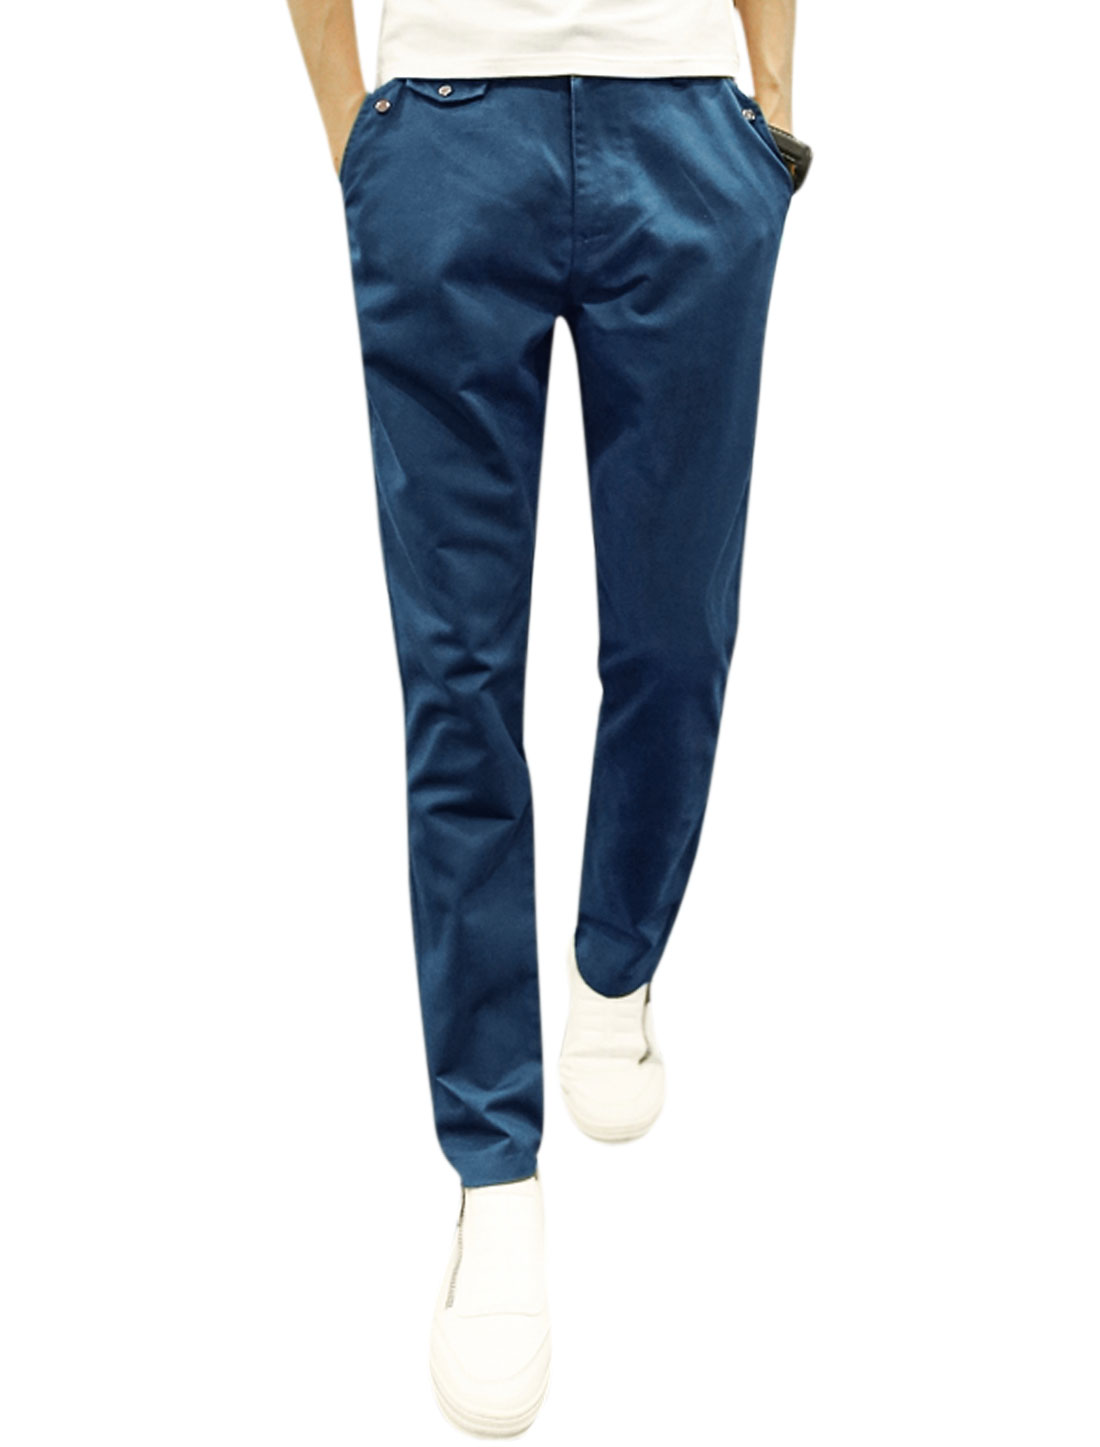 Men Zip Fly Button Closure Tapered Hip Pockets Slim Fit Casual Pants Blue W32